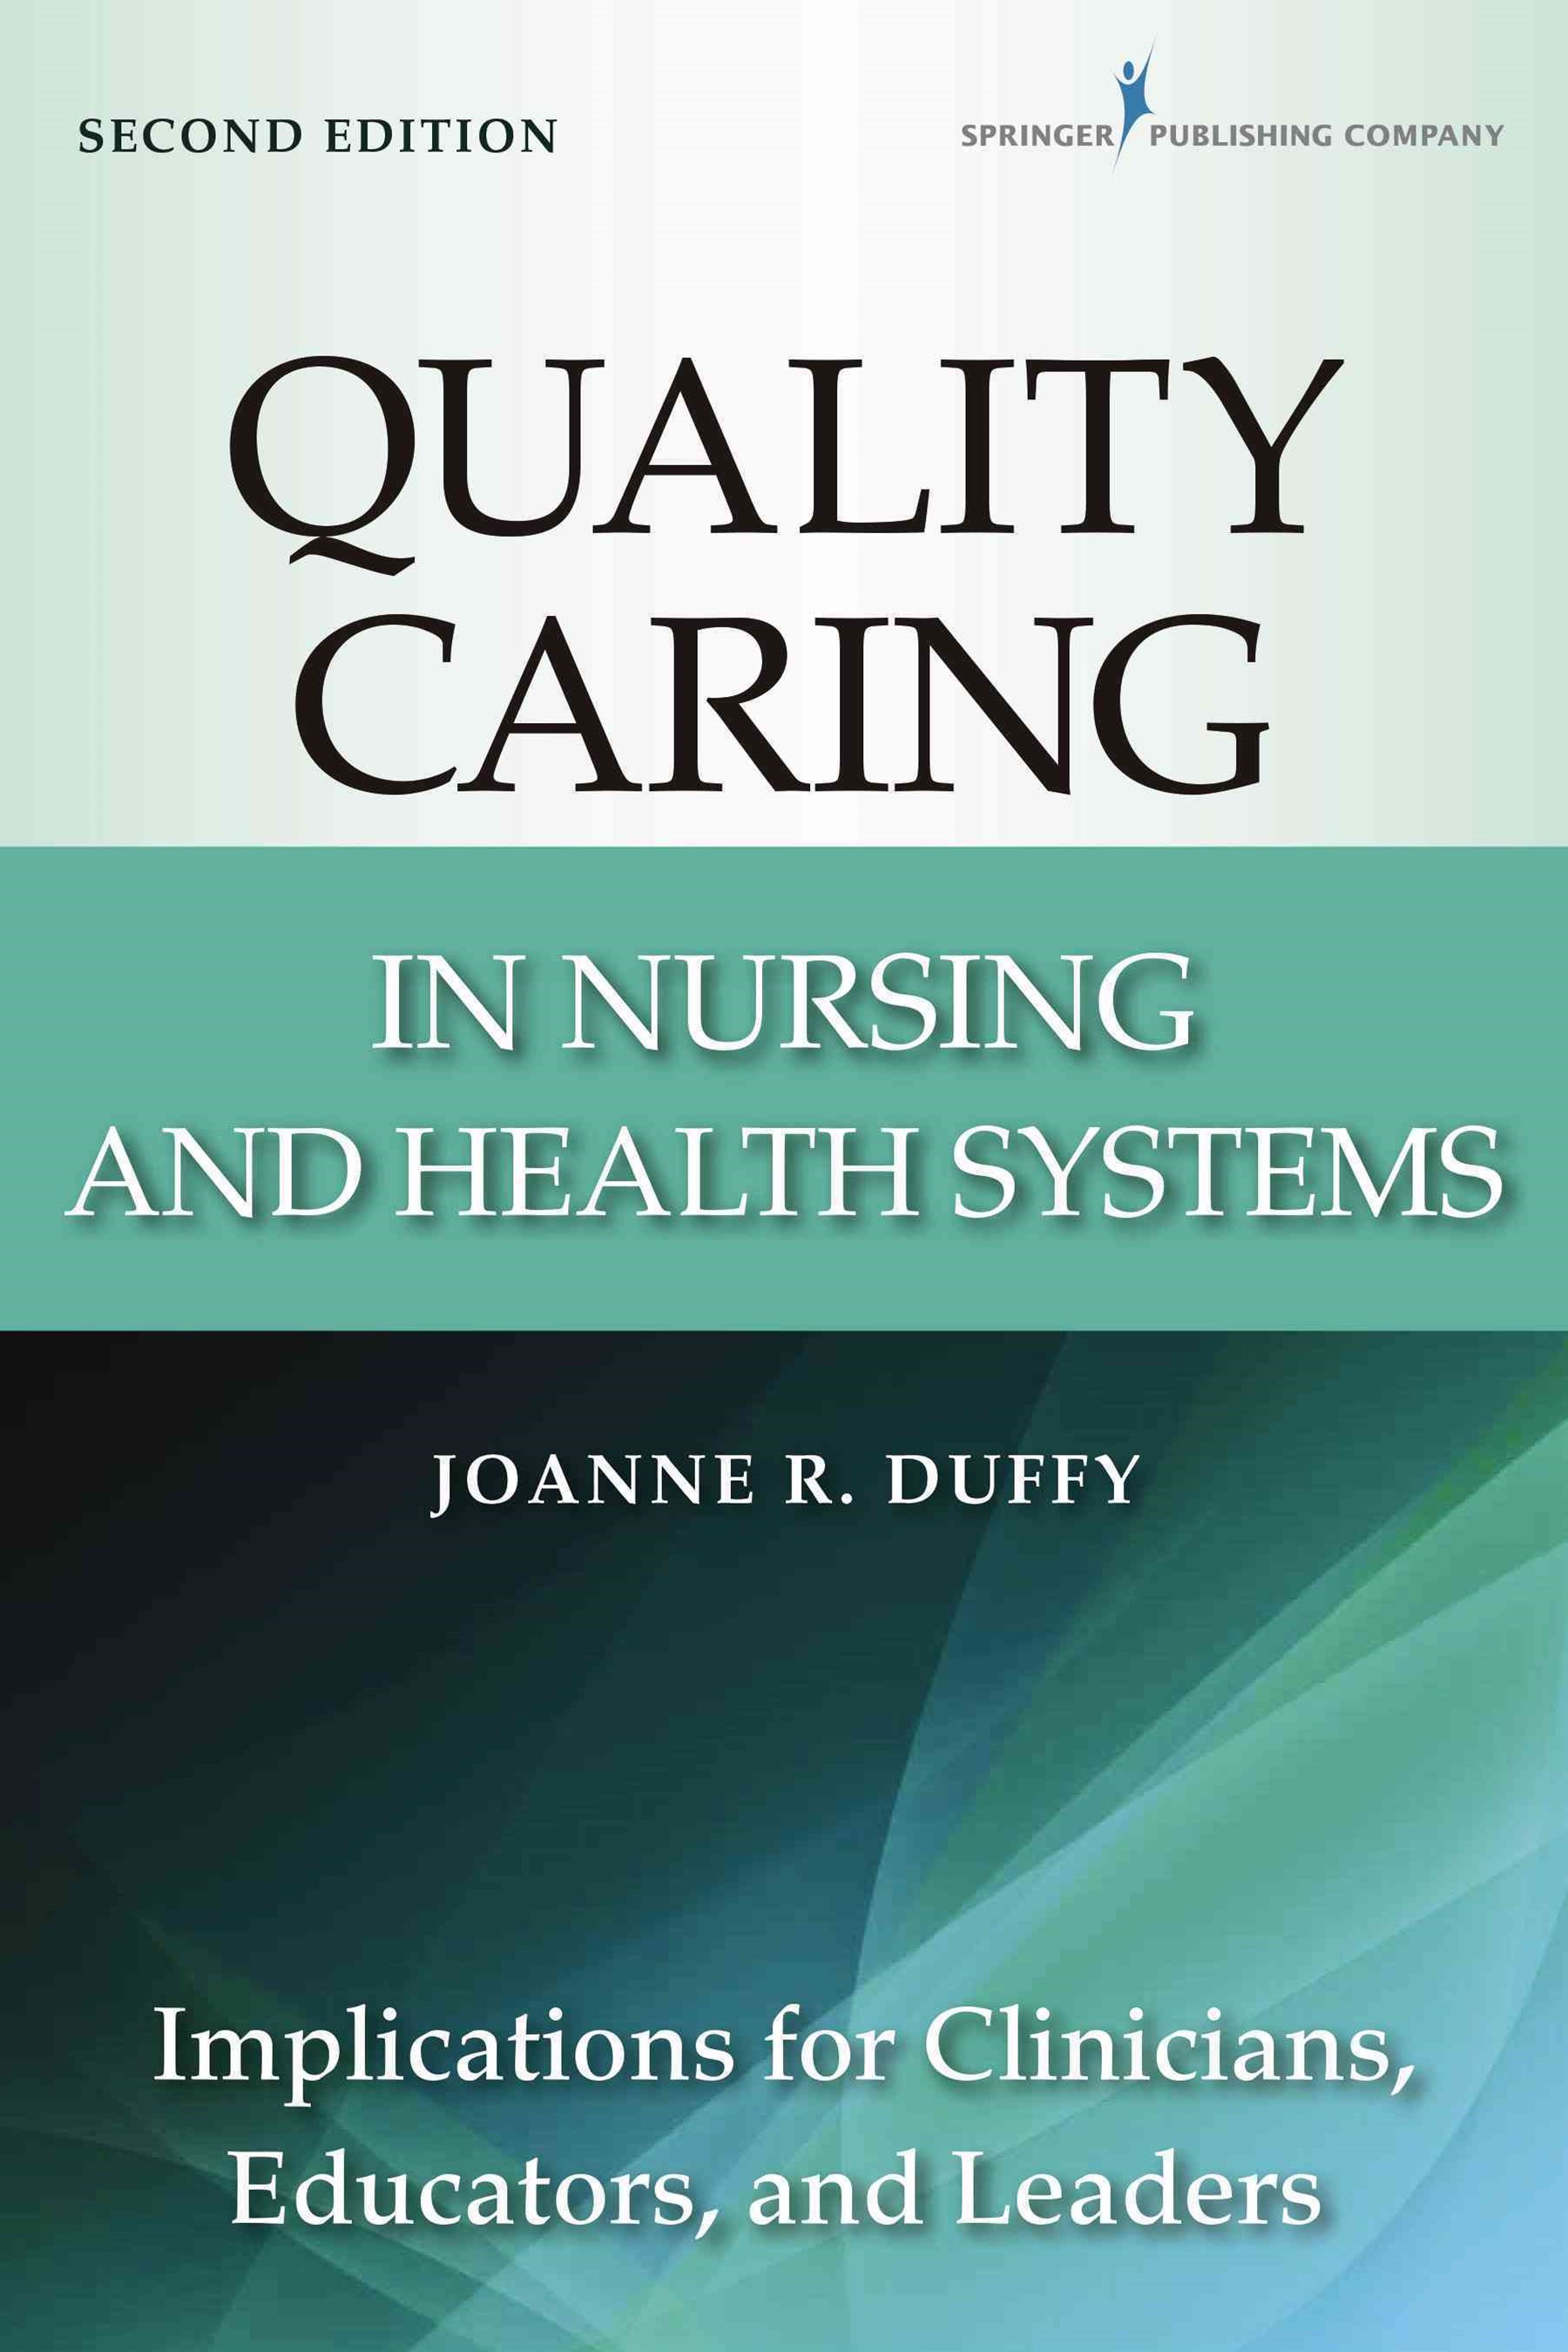 Quality-Caring in Nursing and Health Systems